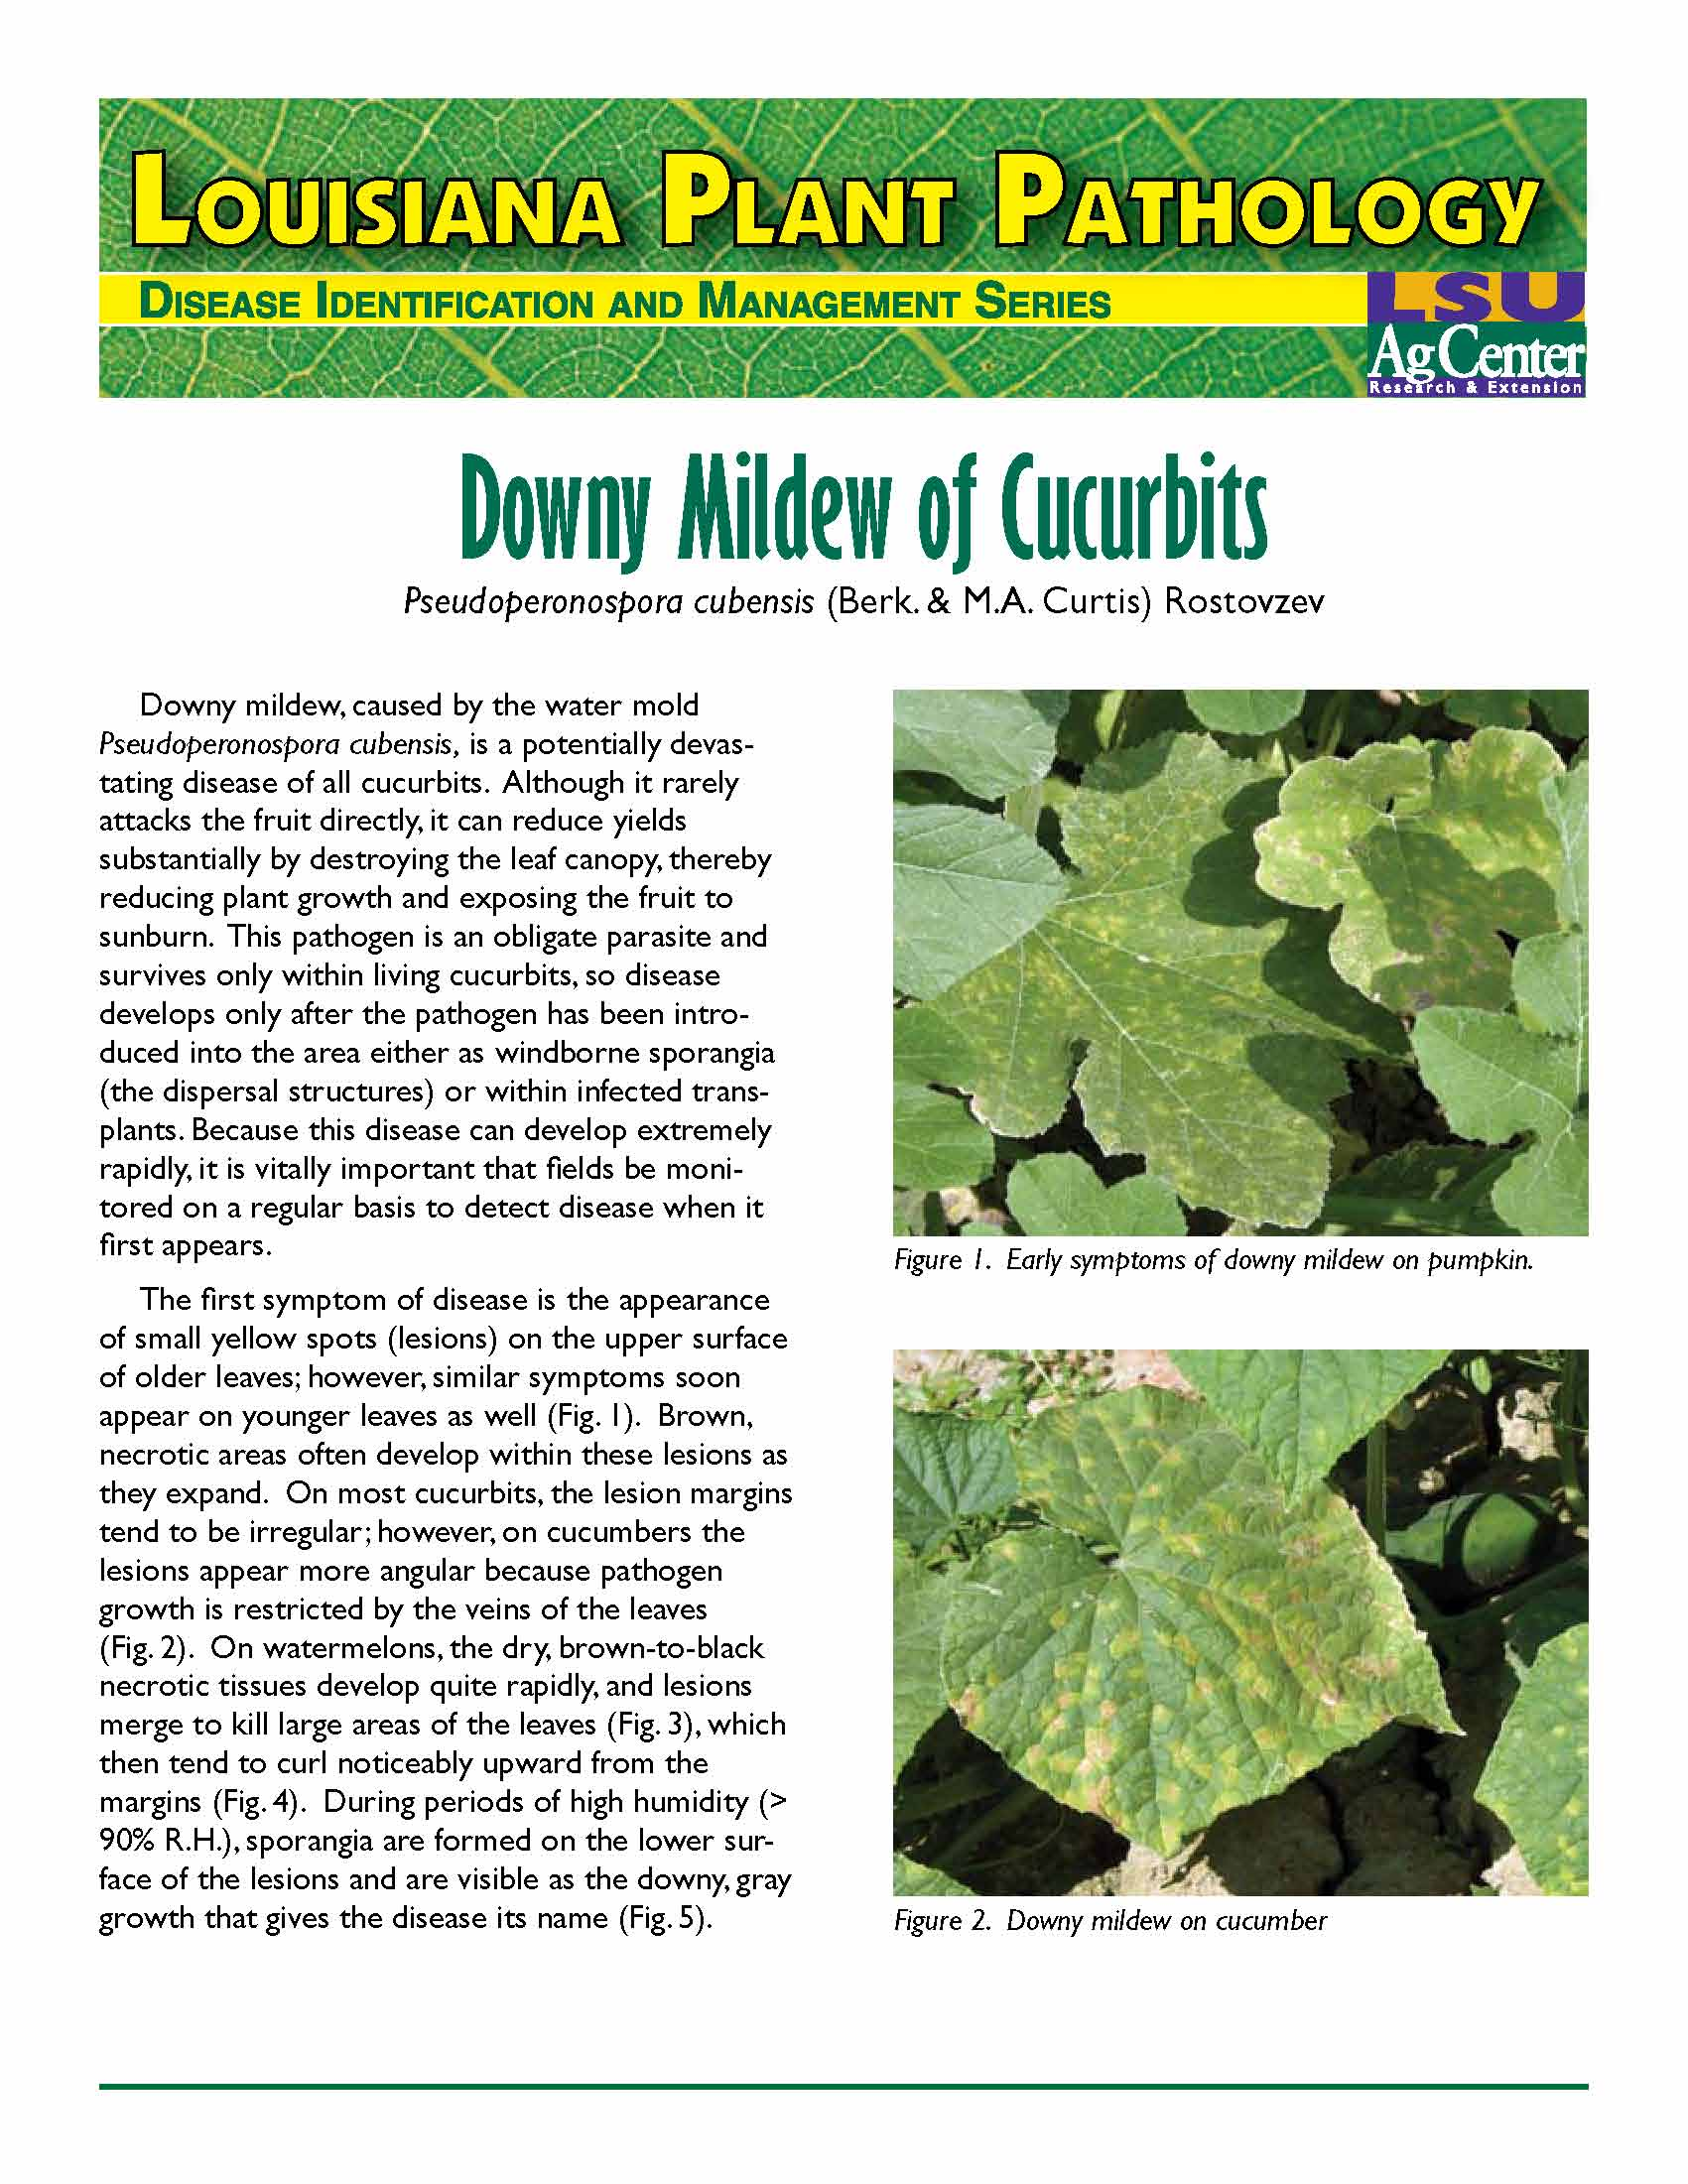 Louisiana Plant Pathology:  Downy Mildew on Cucurbits